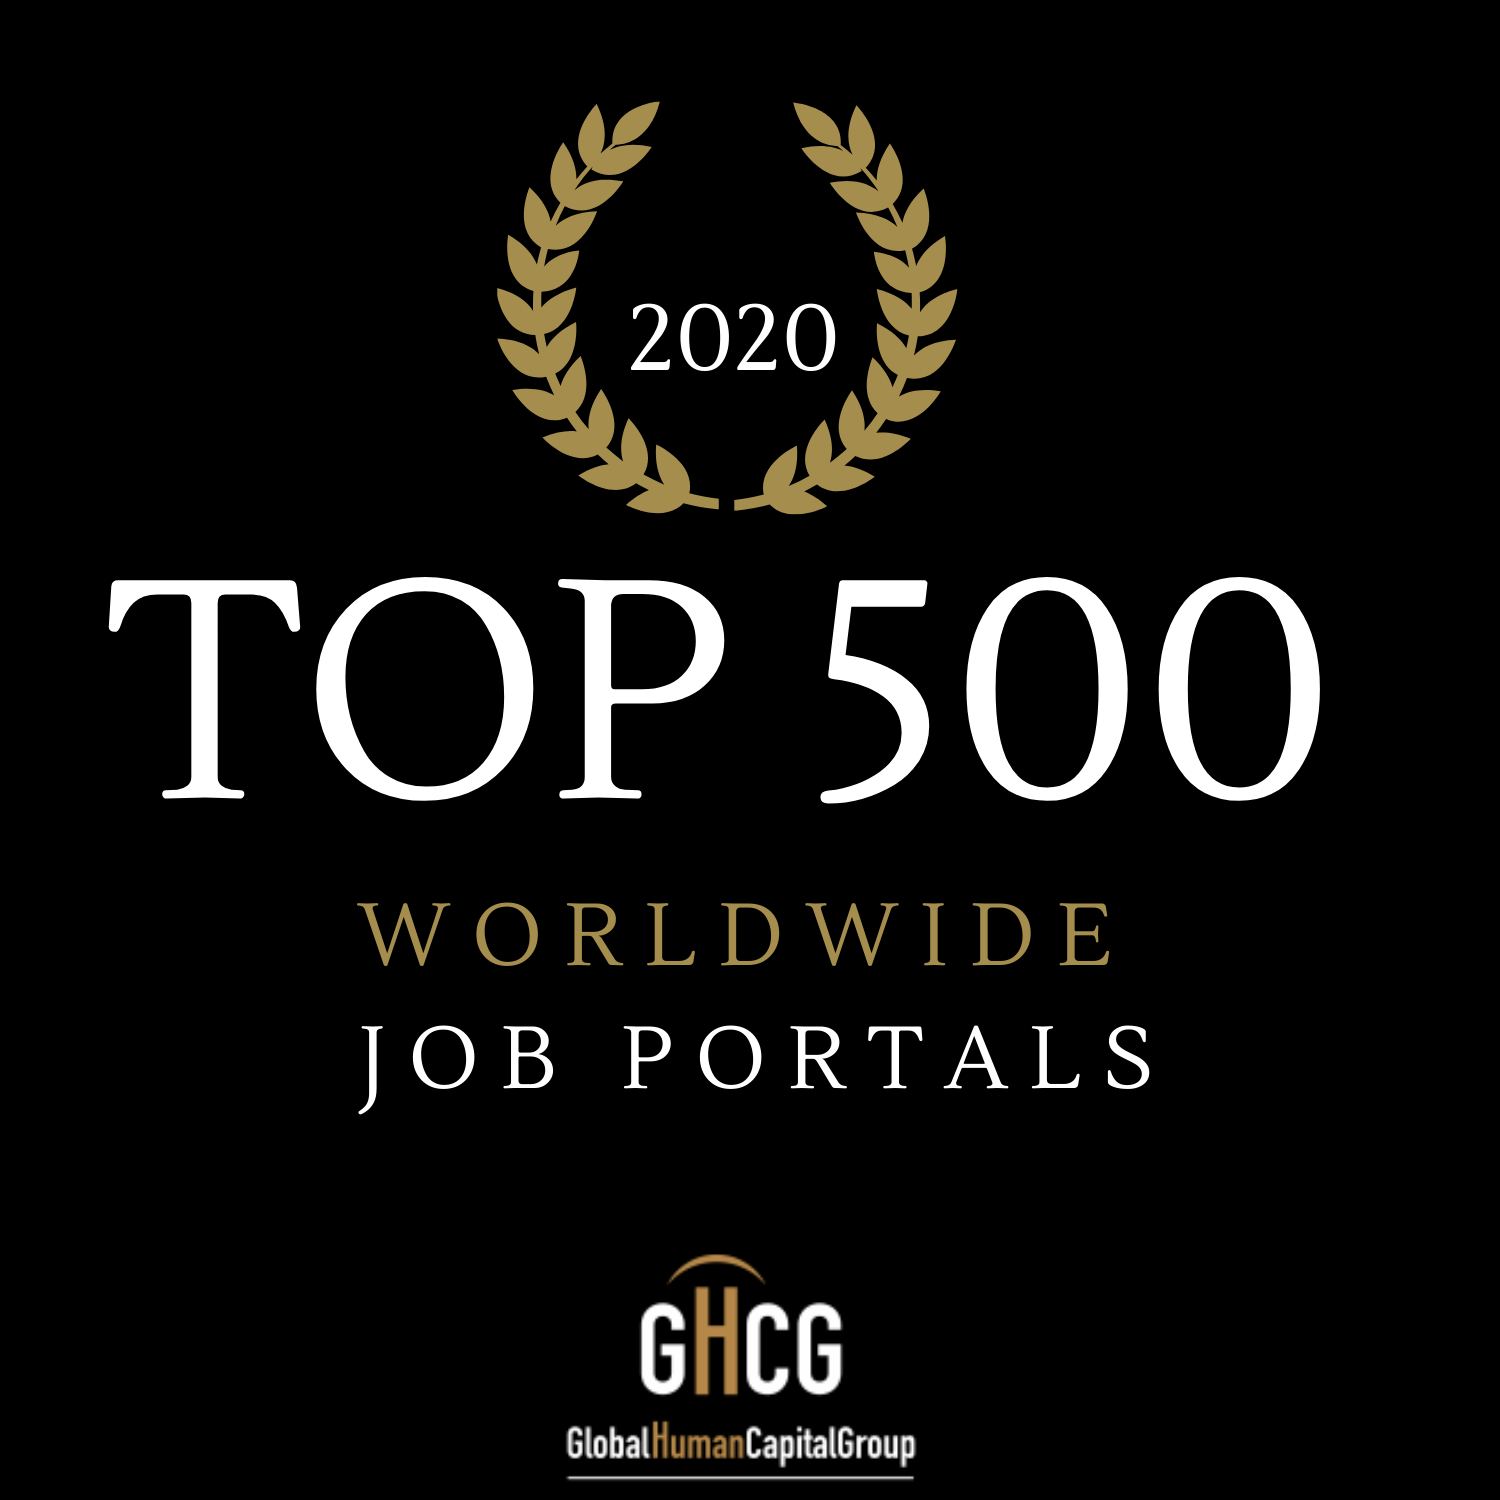 2020 ranking of the 500 best job portals in the world (228 countries)